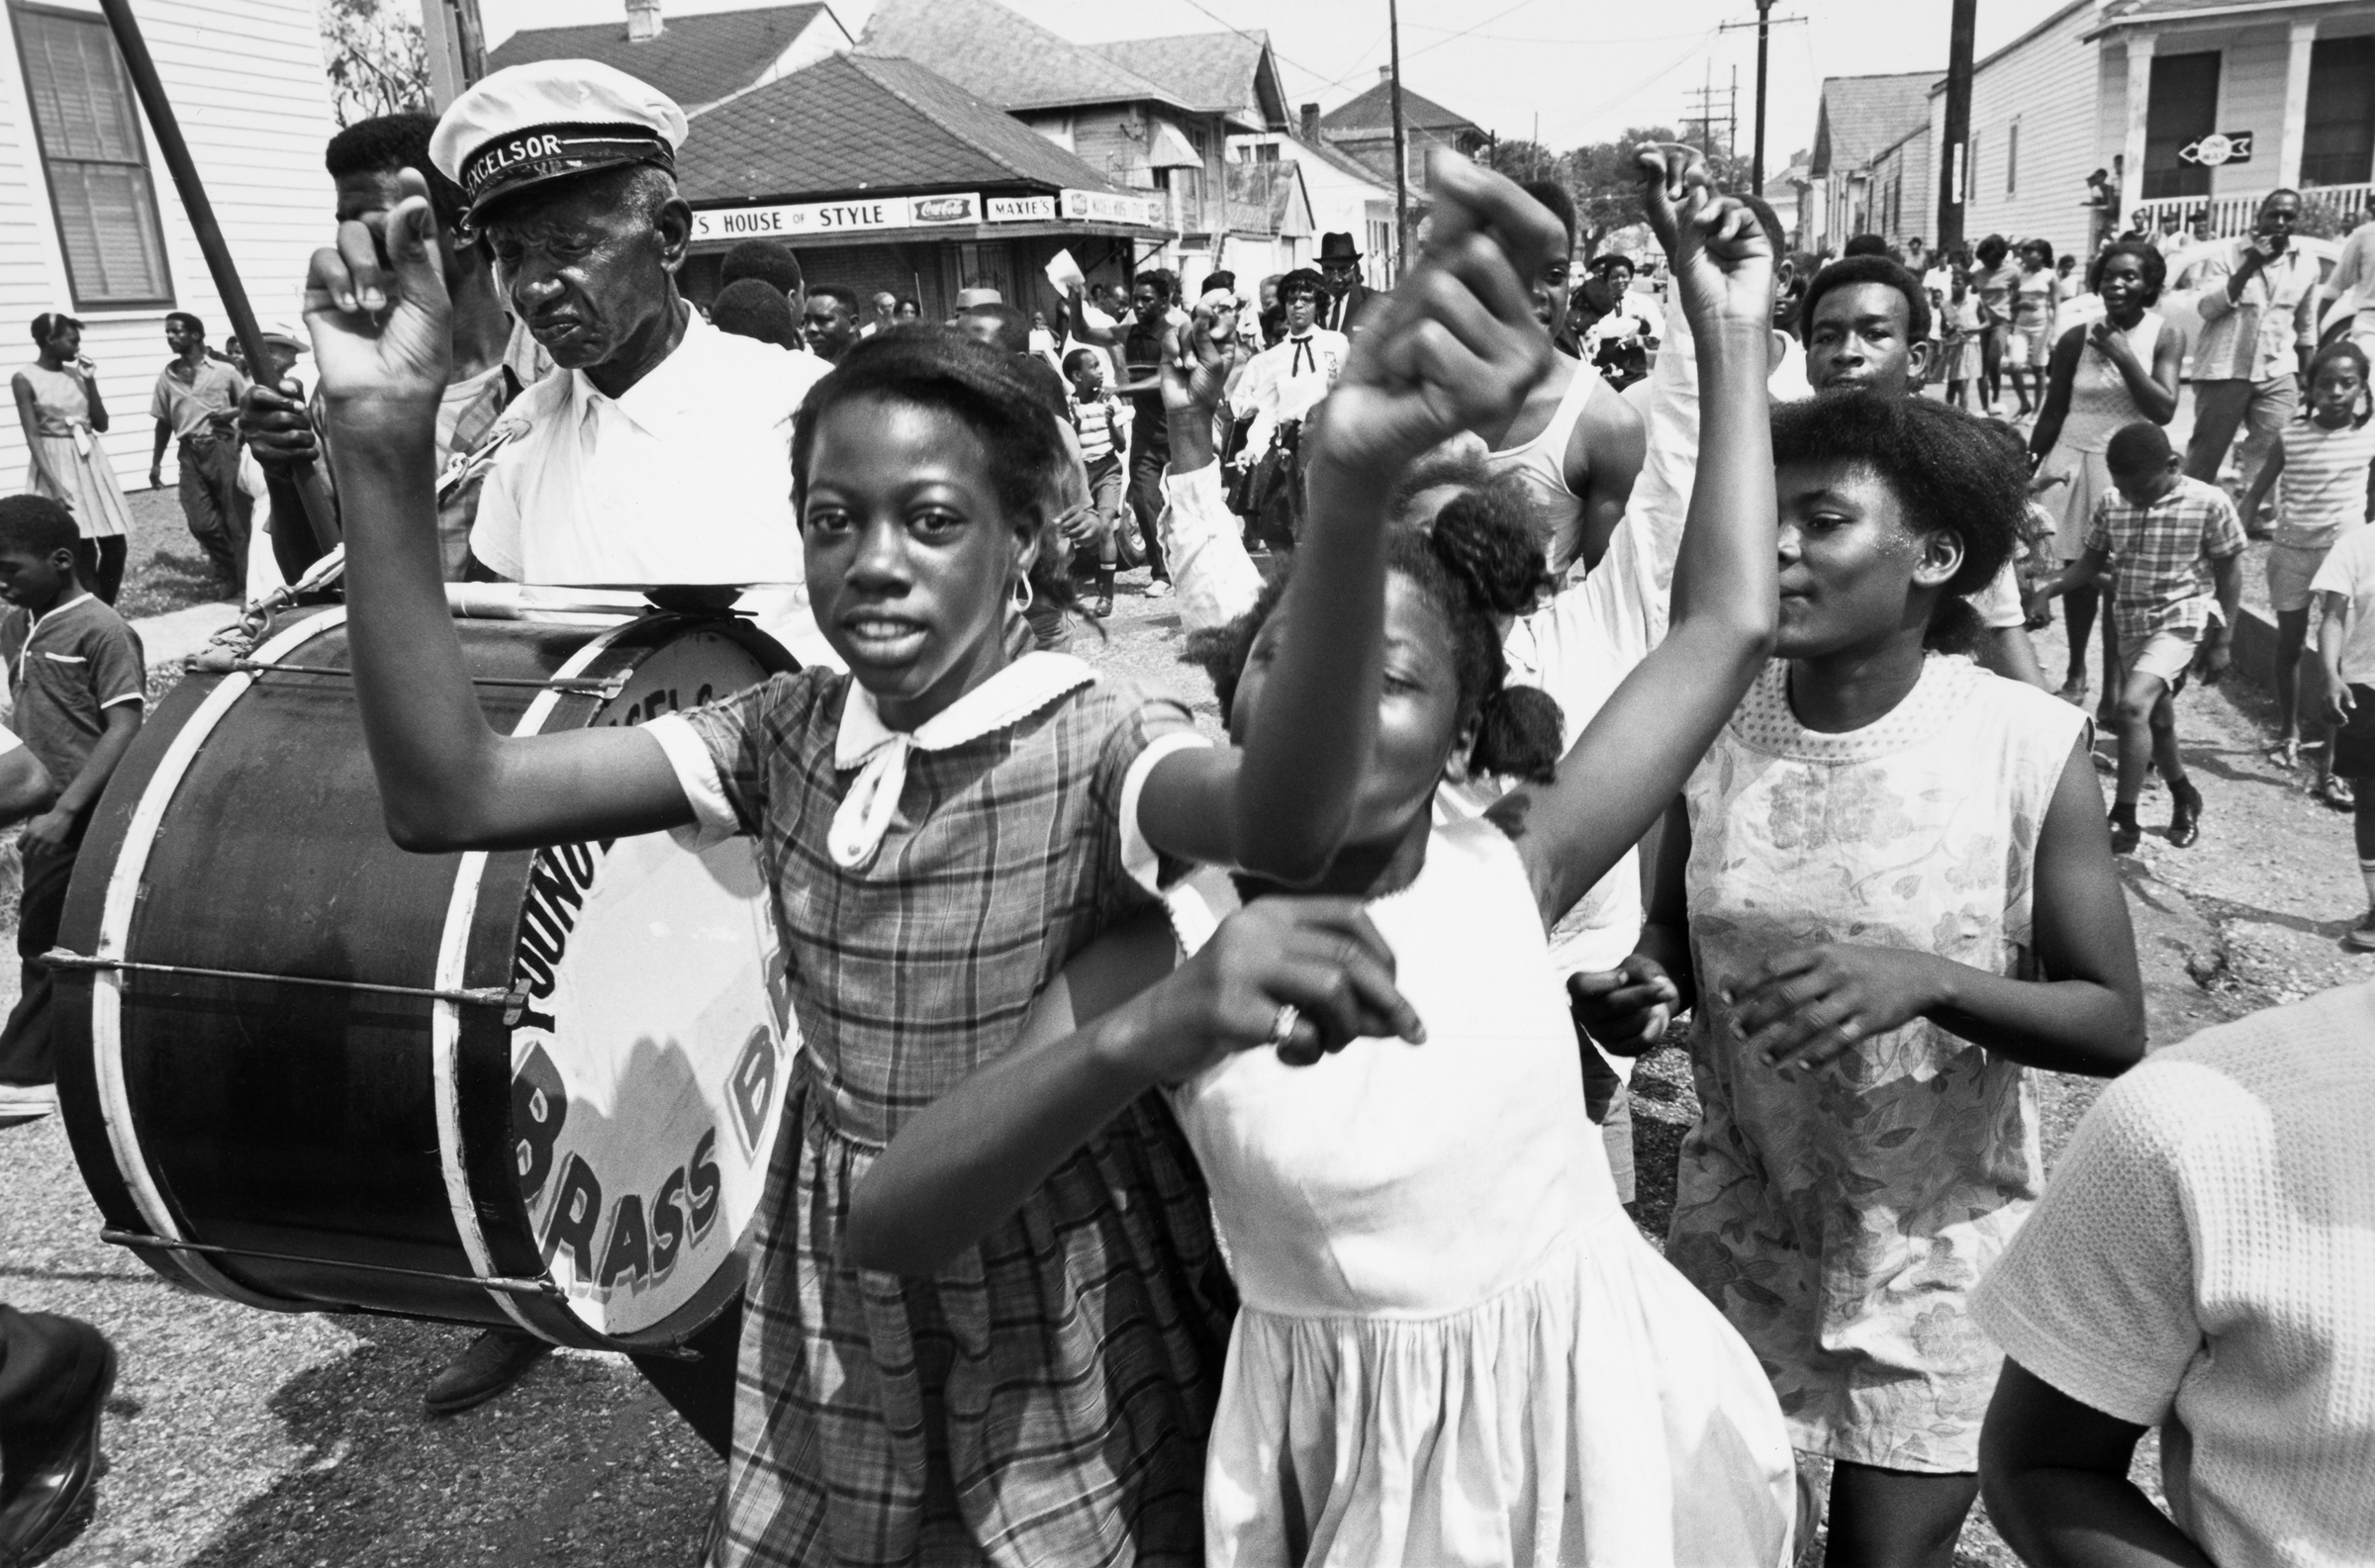 the history of jazz As part of the culture & change: black history in america online learning activity, students can learn about the history of jazz (grades 3 and up), which was adapted from the jazz for young people curriculum by jazz at lincoln center.